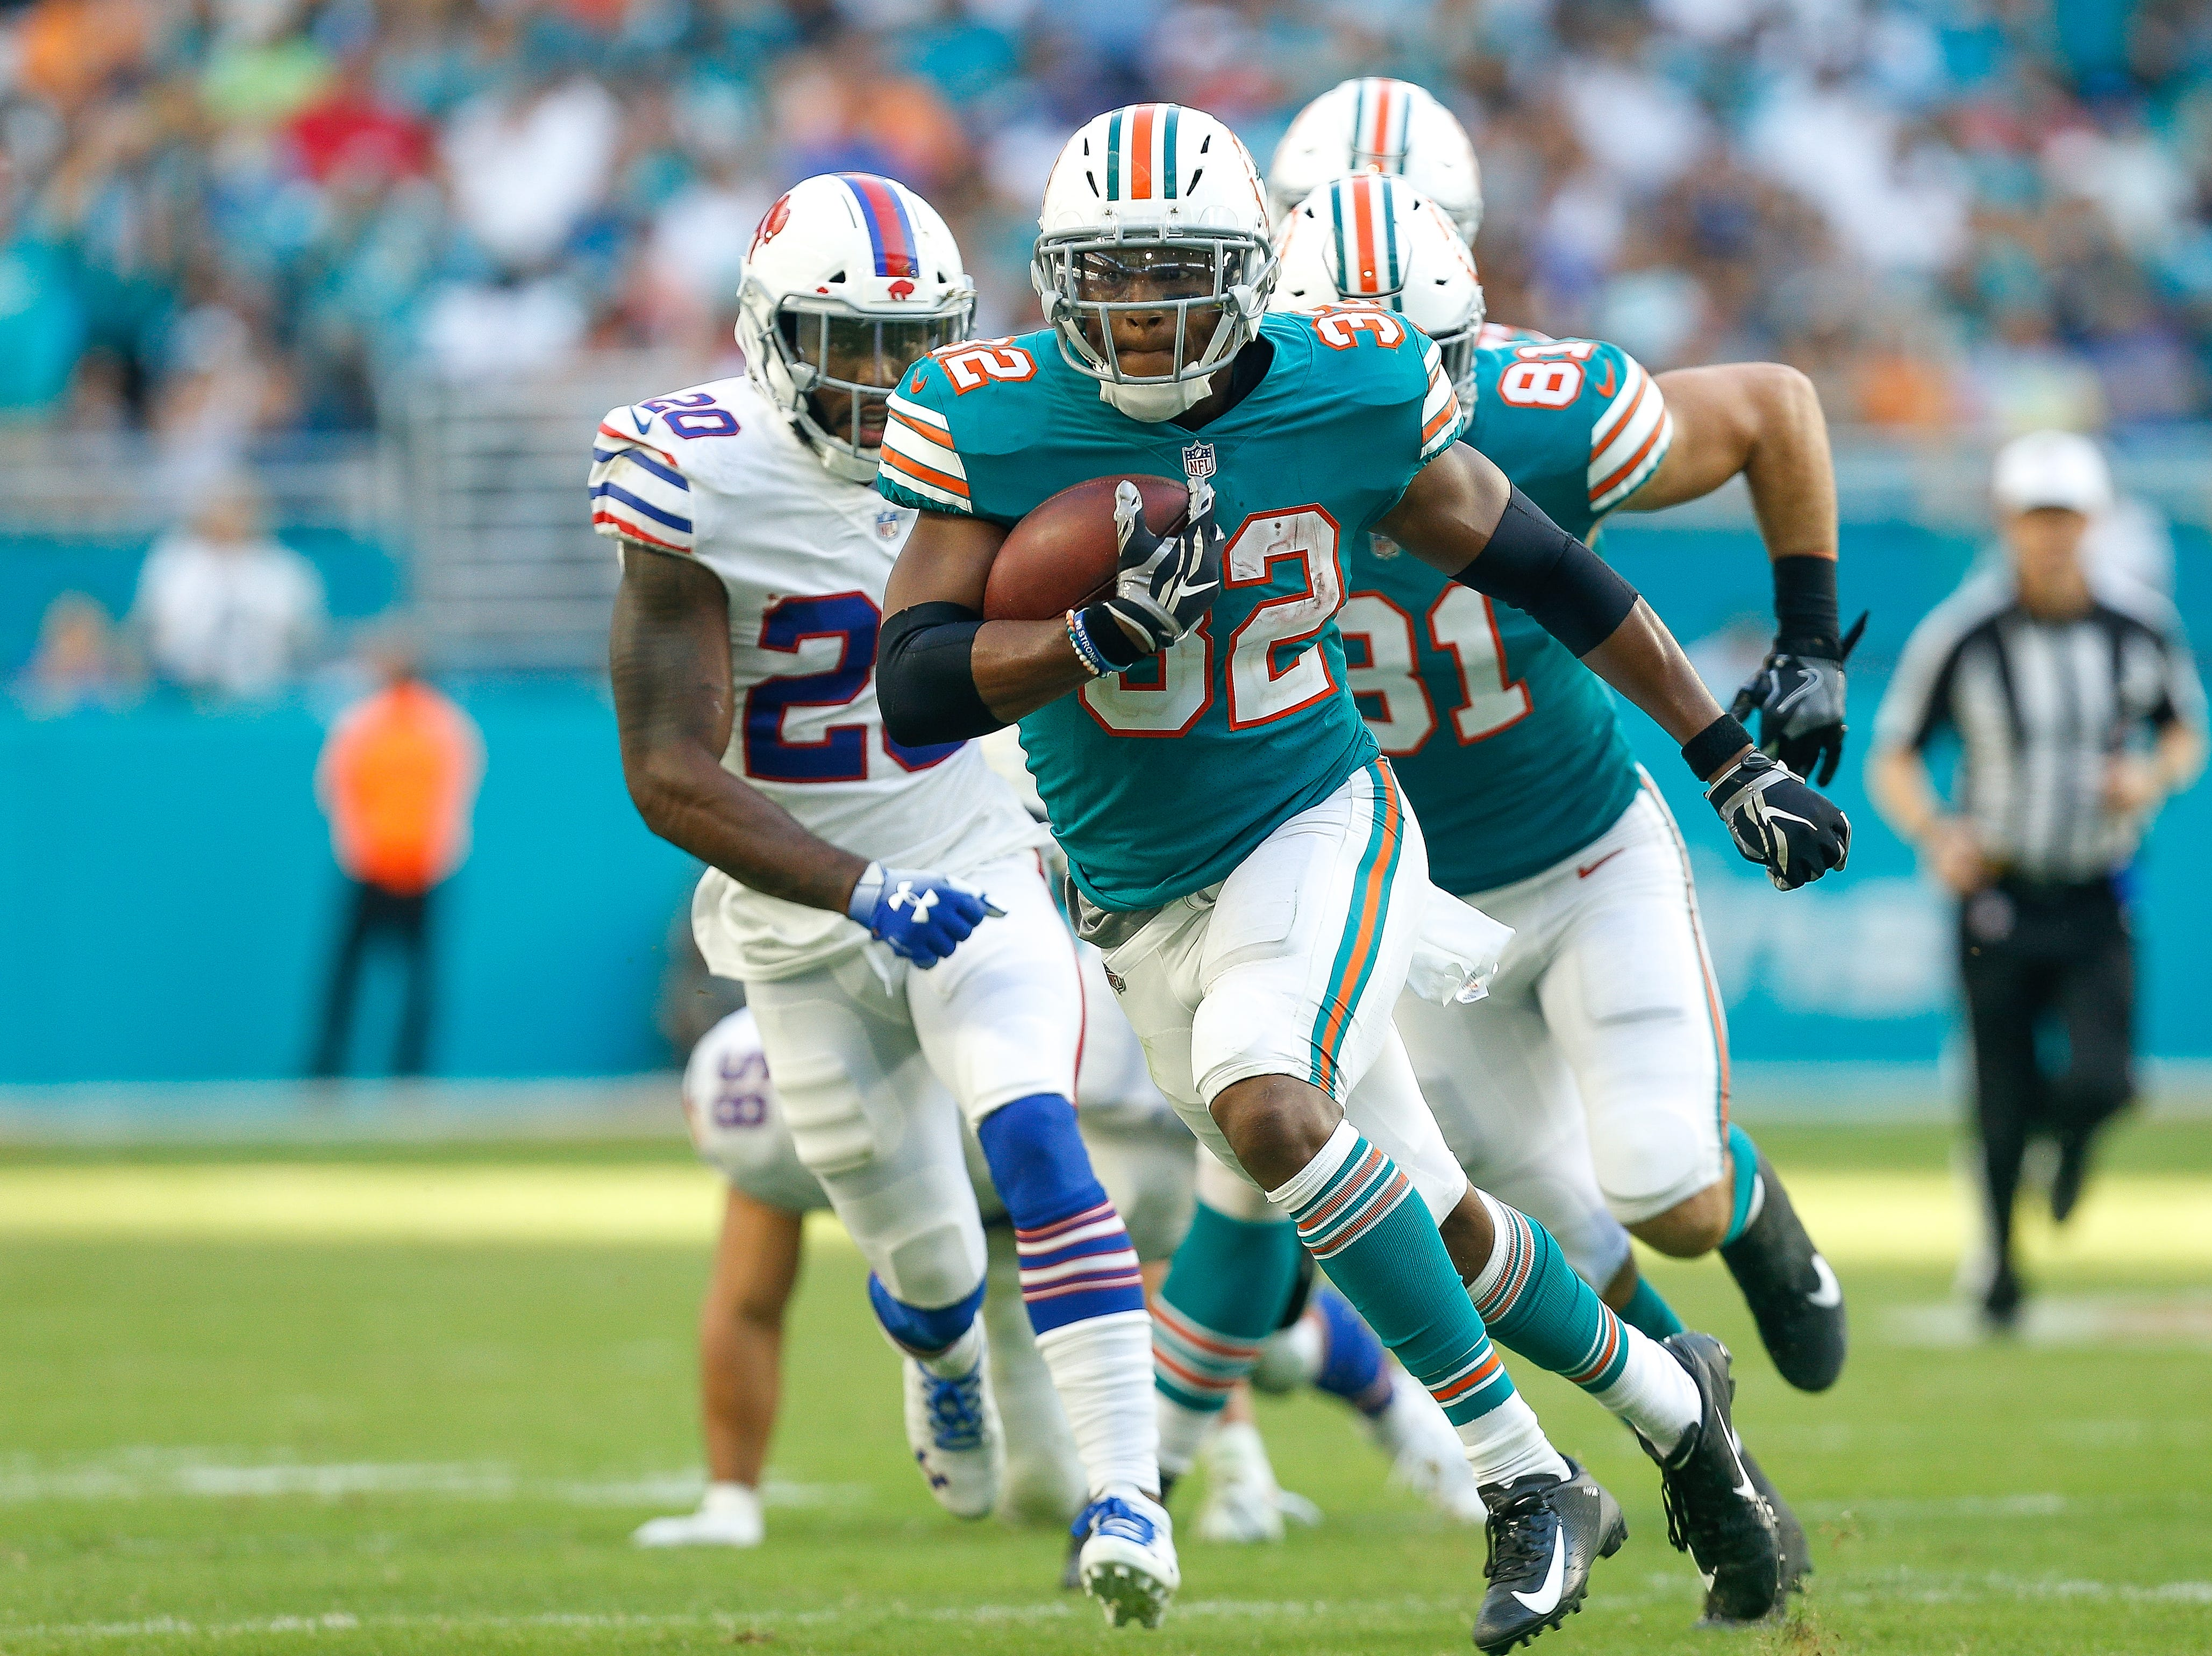 MIAMI, FL - DECEMBER 02:  Kenyan Drake #32 of the Miami Dolphins runs with the ball against the Buffalo Bills during the first half at Hard Rock Stadium on December 2, 2018 in Miami, Florida.  (Photo by Michael Reaves/Getty Images)